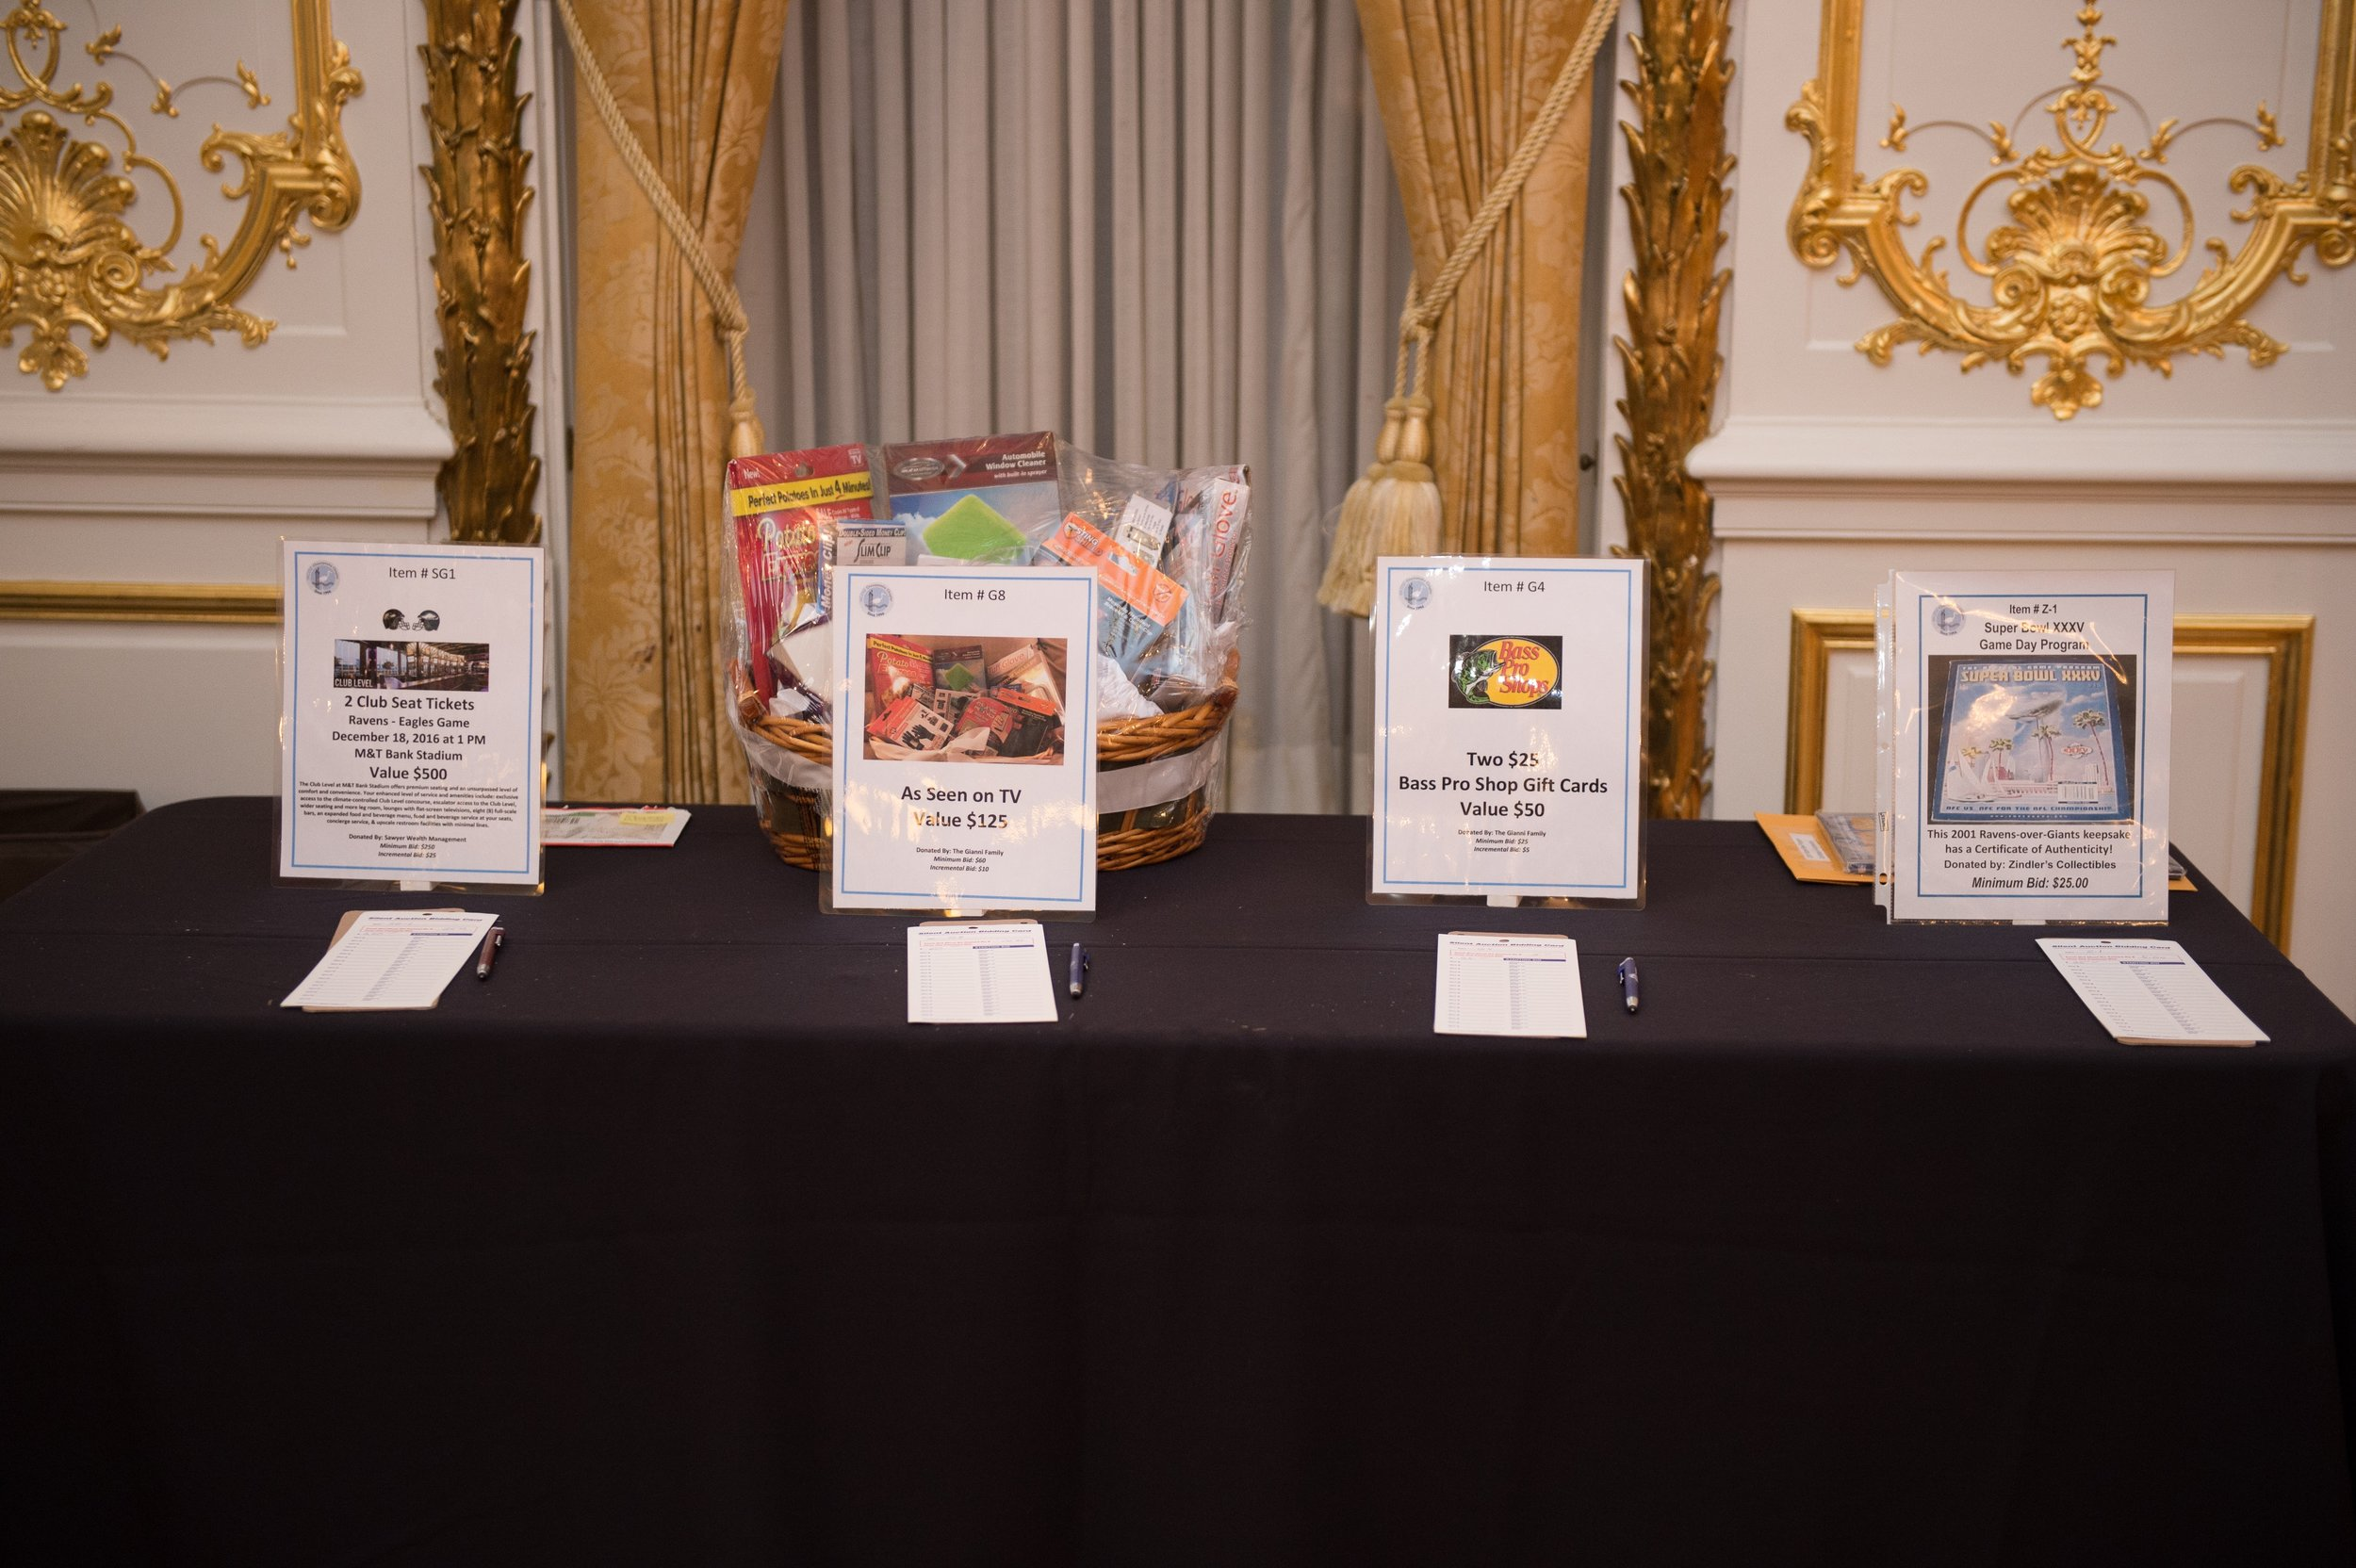 "Items available at the Silent Auction included Ravens Tickets, an ""As Seen on TV"" Gift Basket, Bass Pro Shop Gift Cards, and a Super Bowl Game Day Program"